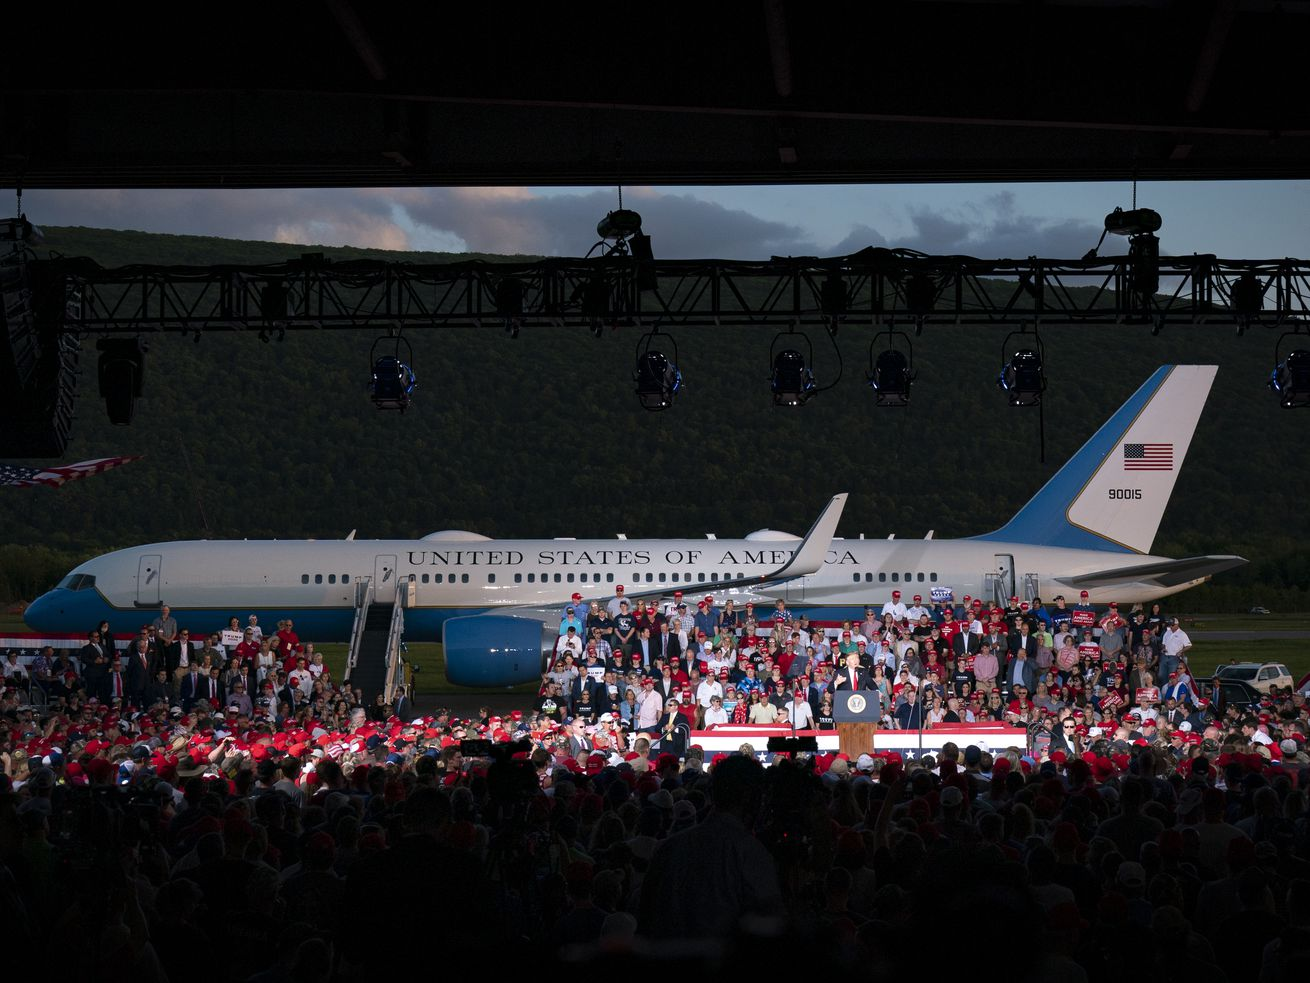 Trump used Air Force One as a prop at his rally Monday evening in Pennsylvania.